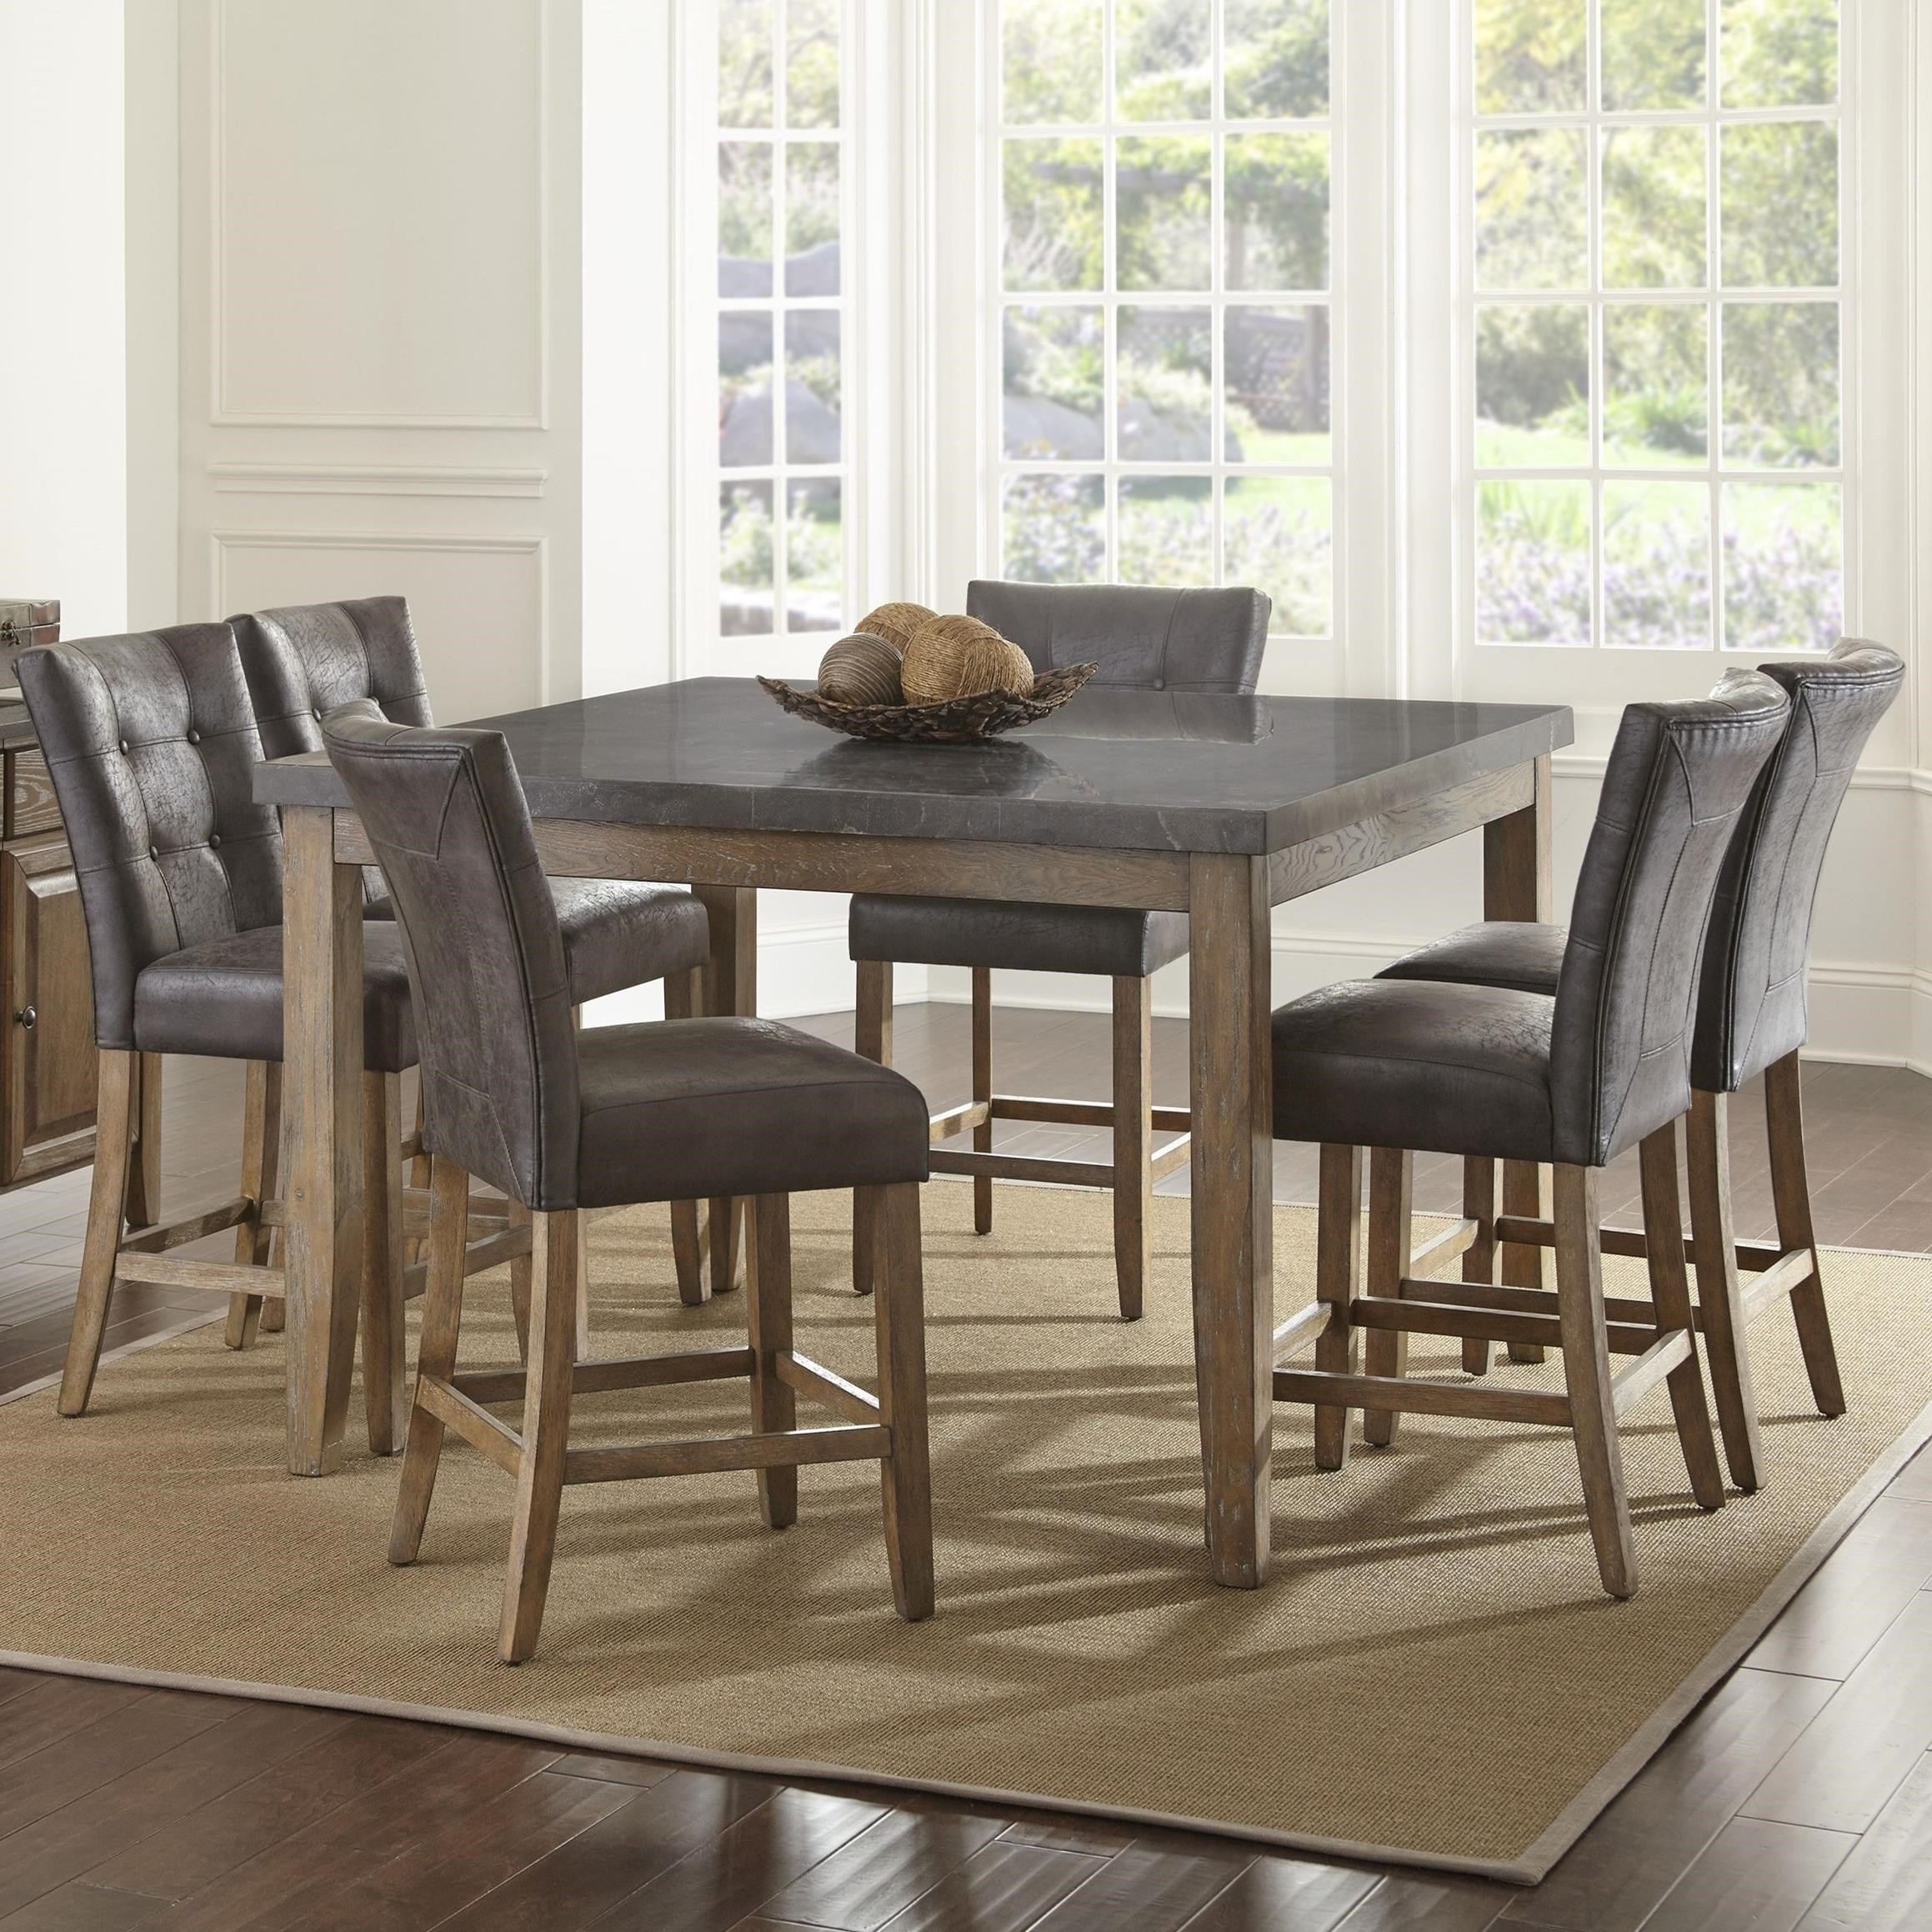 Steve silver debby 7 piece transitional square table and chair set with bluestone top great - Silver dining table and chairs ...